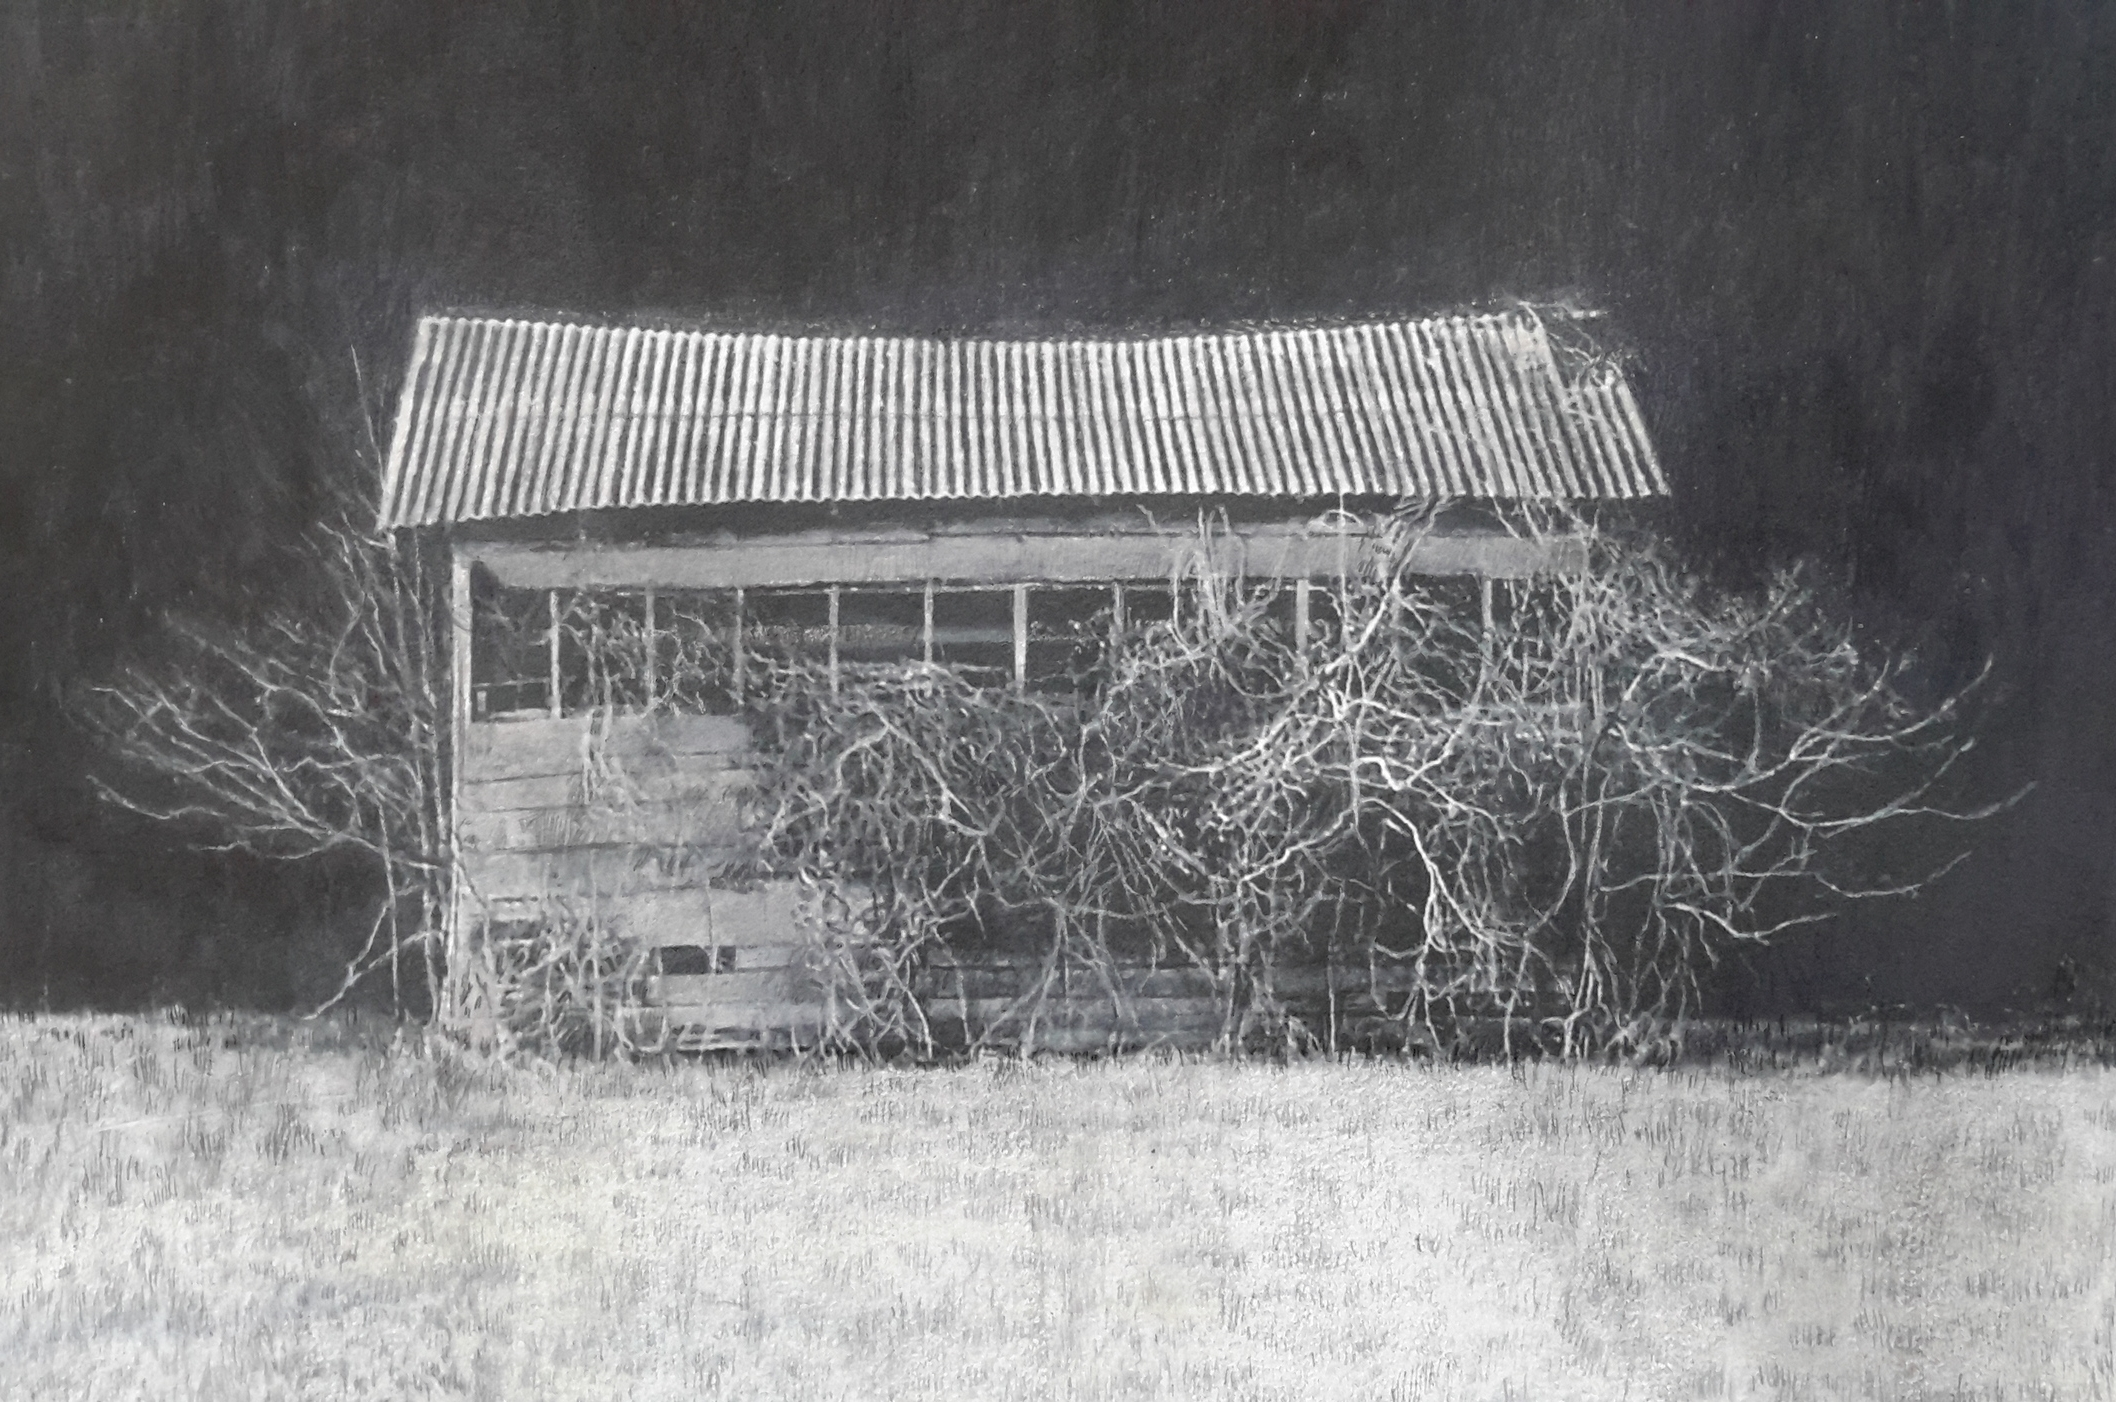 lisa qualls,  near mer rouge in winter , 2015. carbon transfer, colored pencil, and acrlyic on paper mounted on panel, 9 x 12 inches.